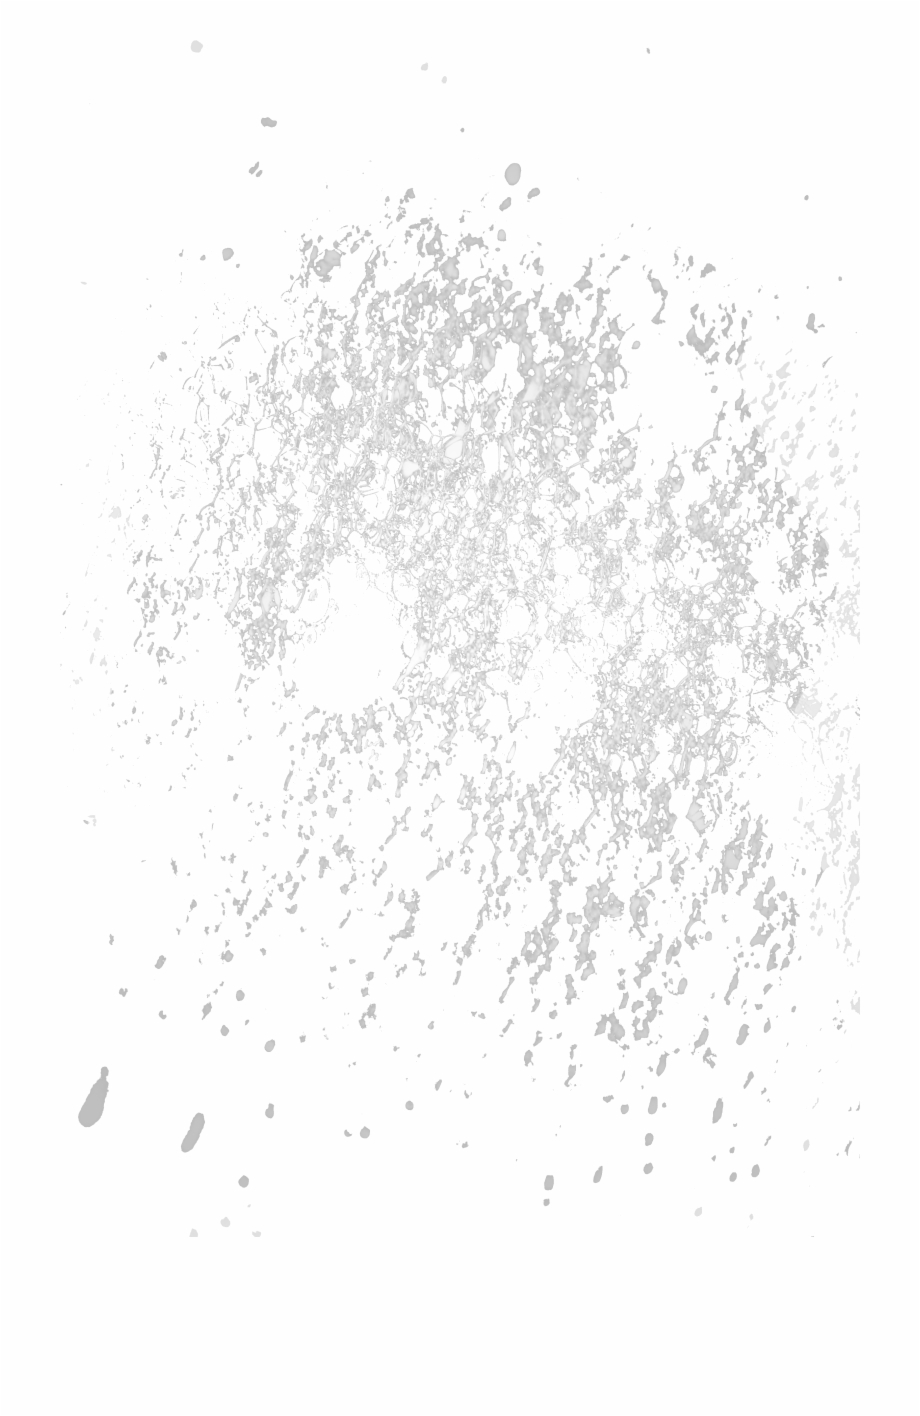 Suds Png, Transparent Png Download For Free #433560.